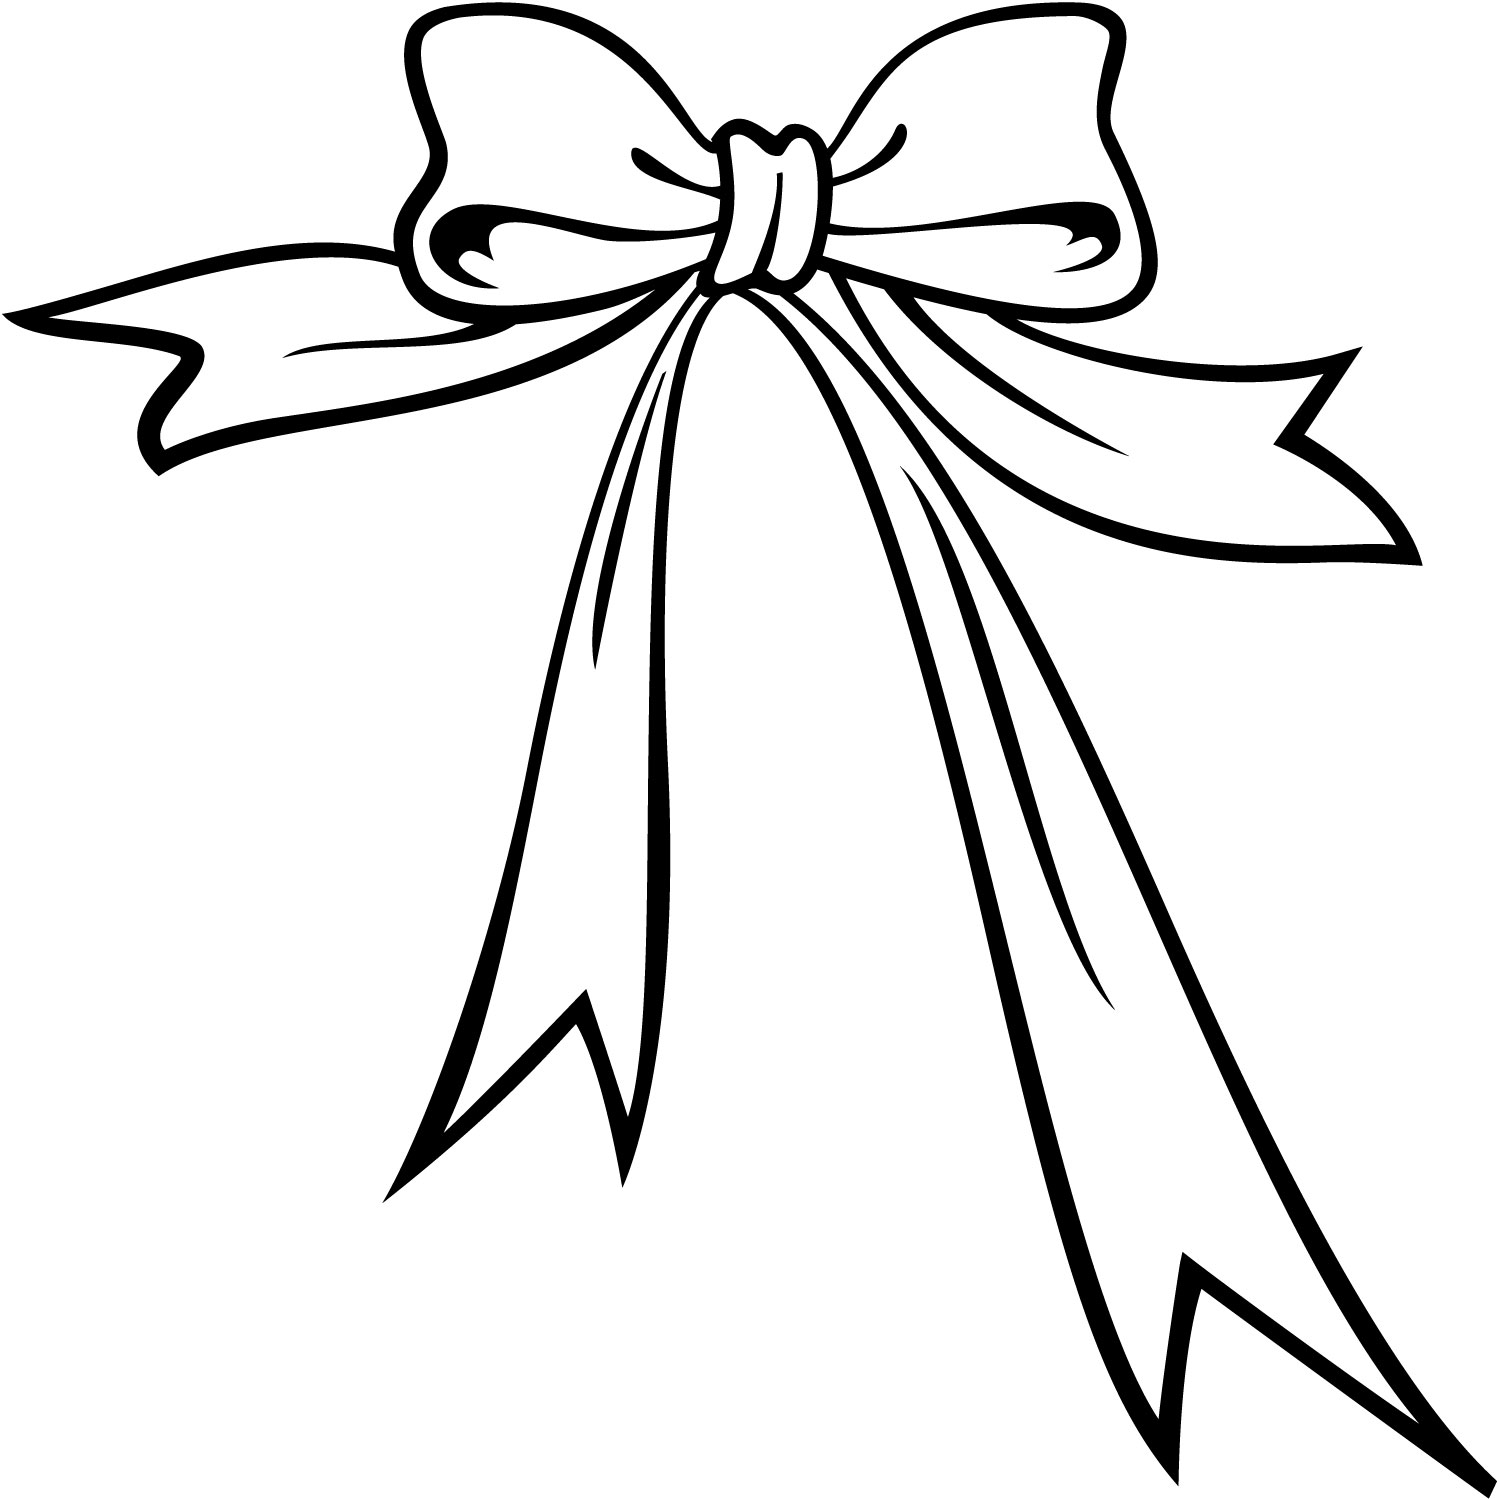 Bow at getdrawings com. Bows clipart line drawing